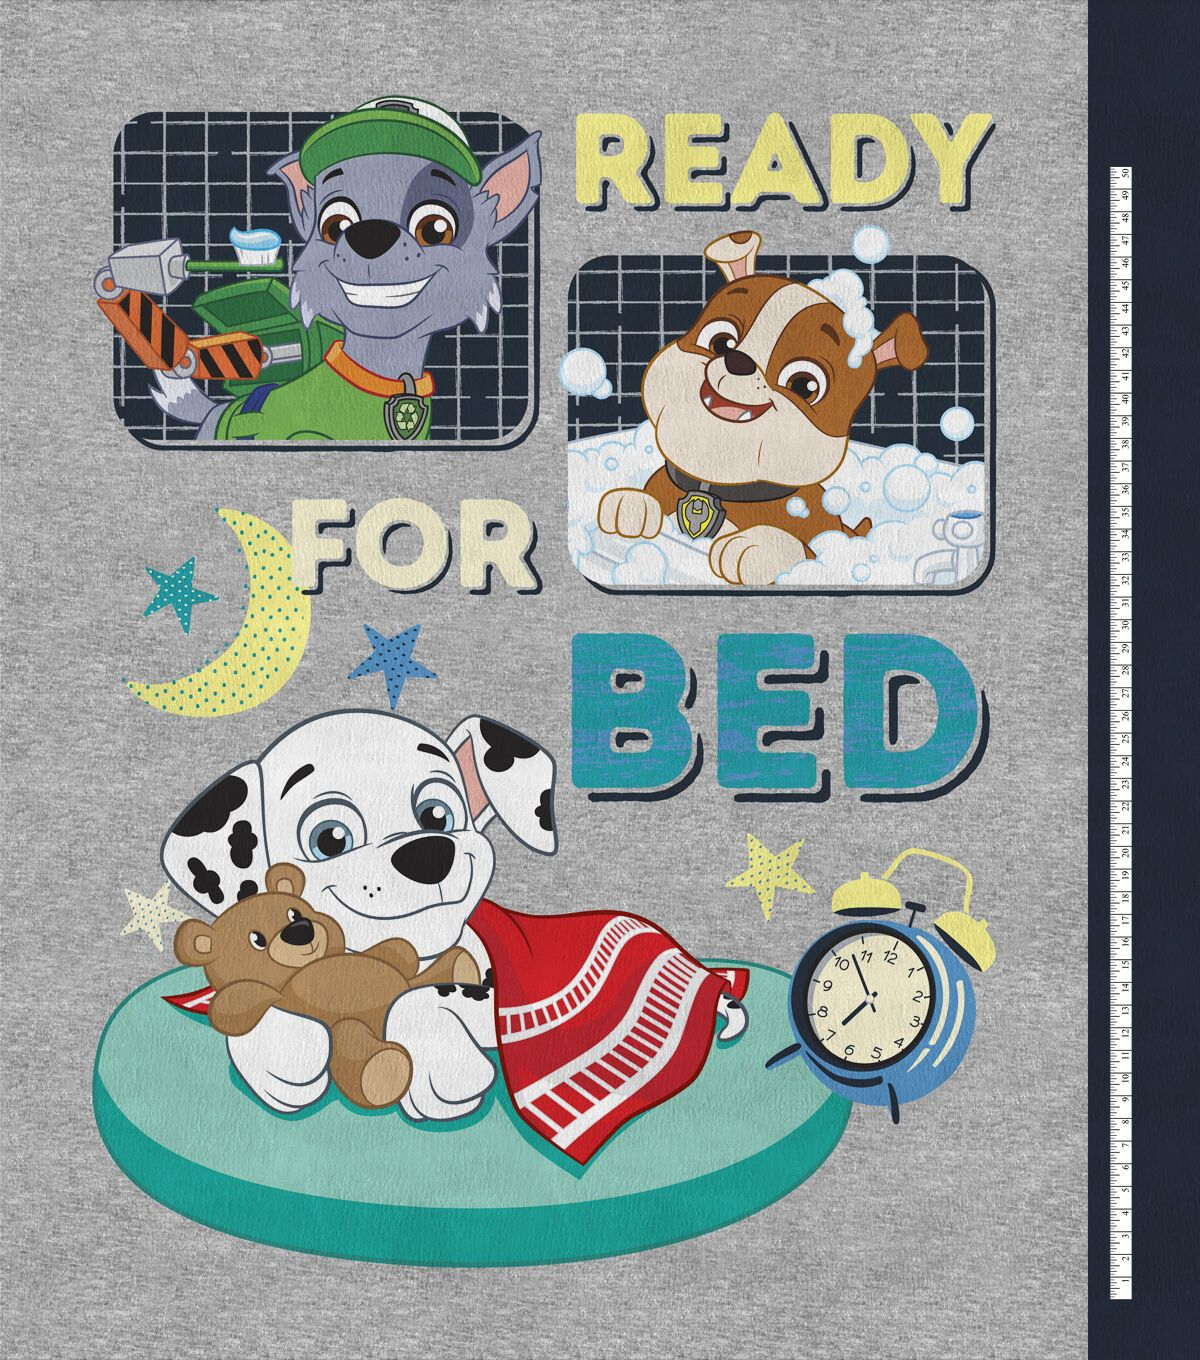 Paw Patrol No Sew Fleece Throw Sleep Boy - Sewing fleece, Sleeping boy, Fleece throw, Paw patrol, Paw, Sewing -